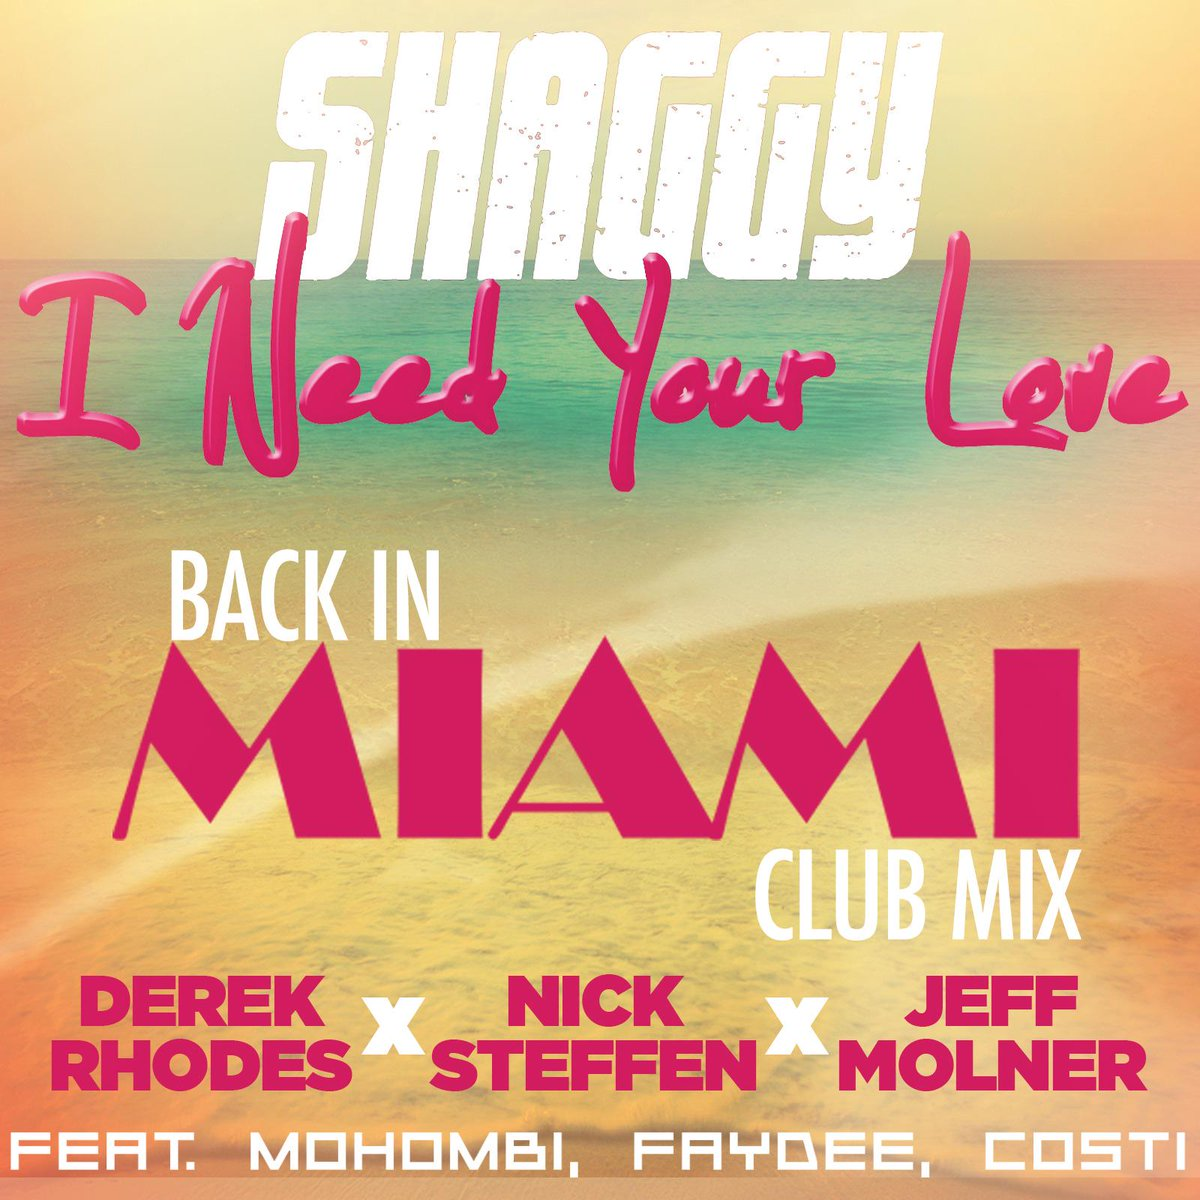 """The Official """"Back In Miami"""" Club Mix of """"I Need Your Love"""" is Now Out on @BroBible! http://t.co/g1bIaLnU3o http://t.co/I3uCjc3zCB"""